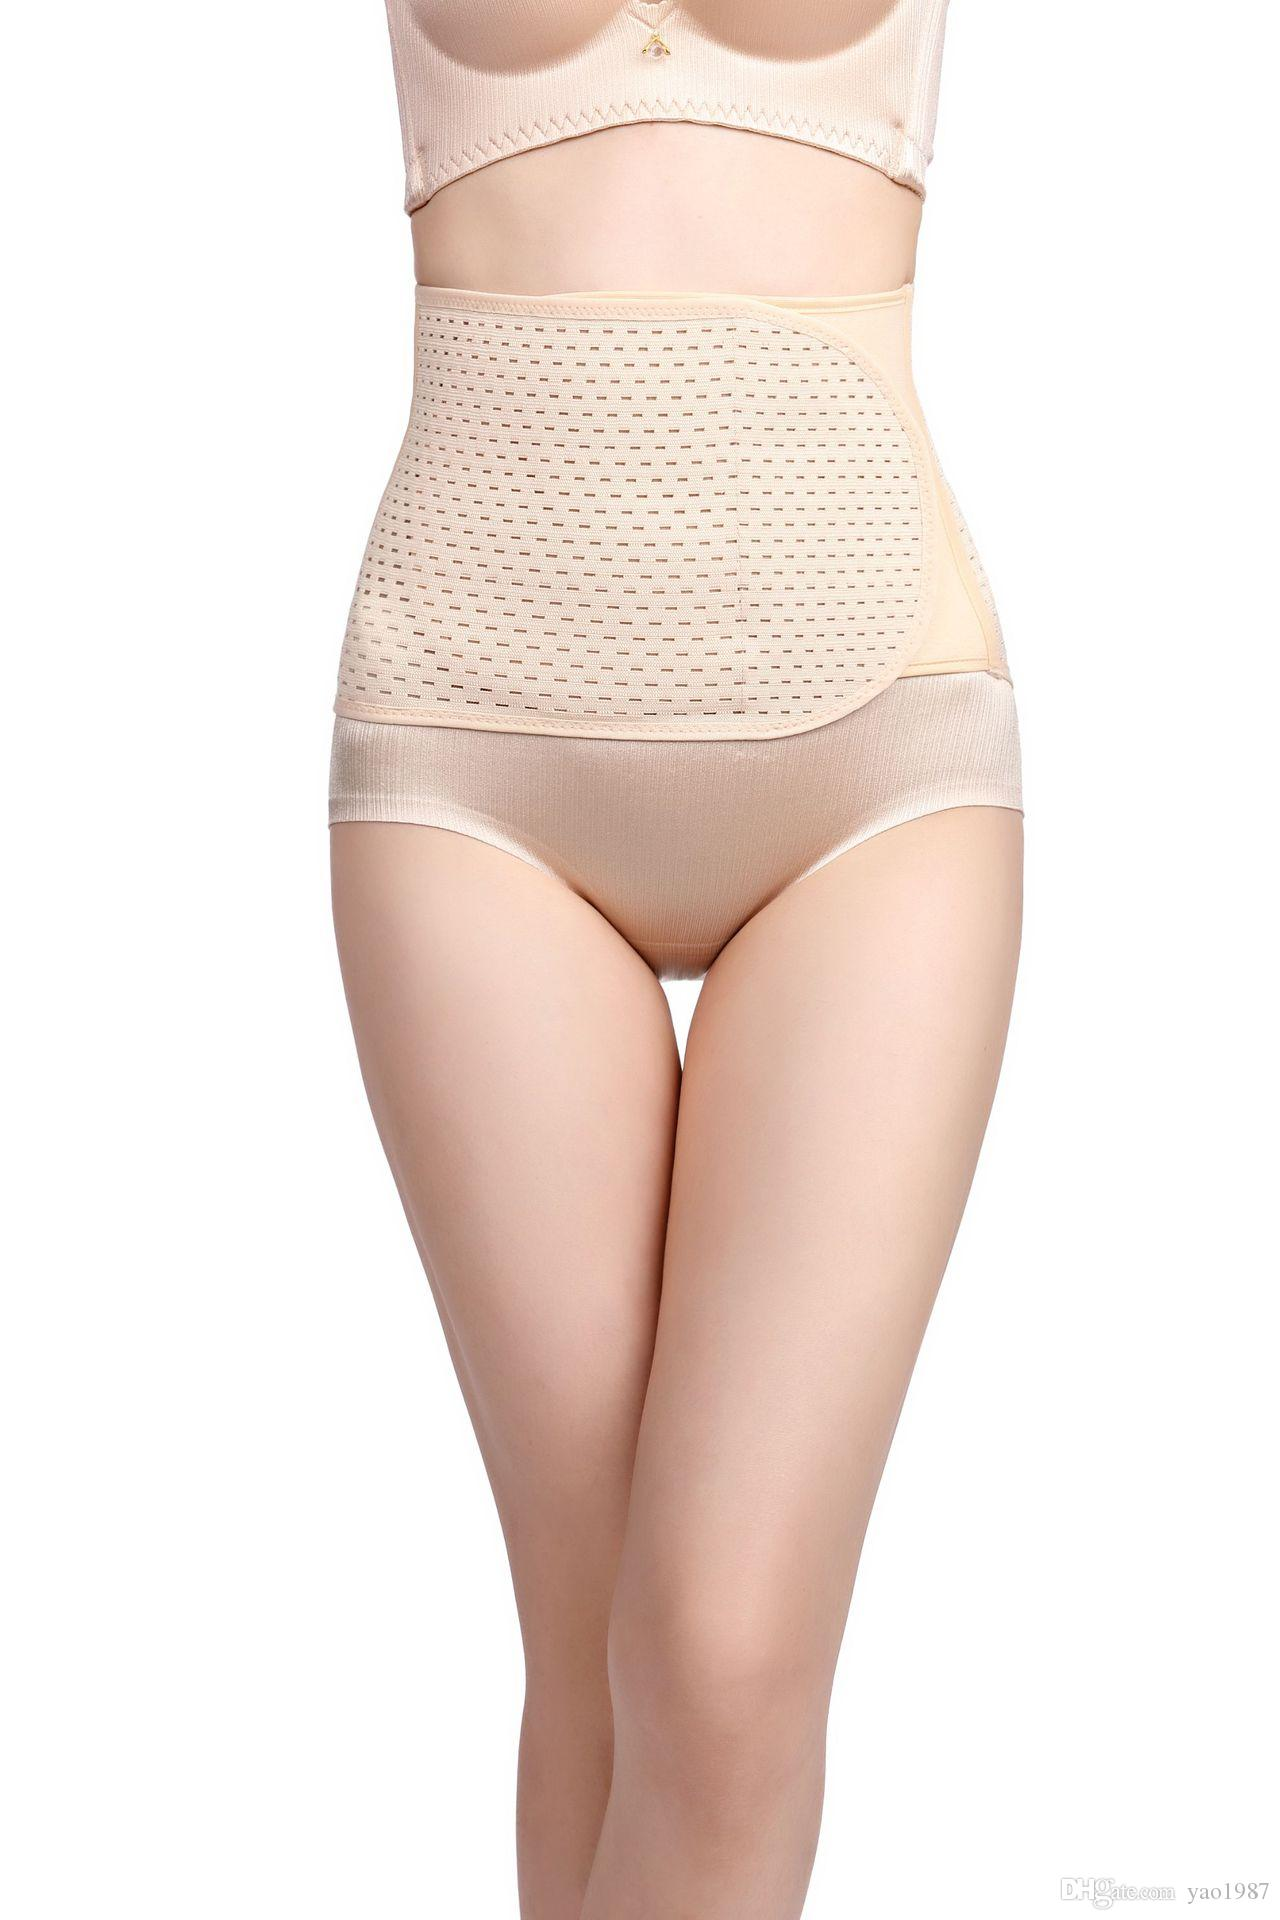 bbe5889ed86dc 2019 2018 Summer Thin Women Body Shaper Bodysuits Tummy Control Underbust  Slimming Underwear Breathable Shapewear Control Waist Cincher Firm From  Yao1987